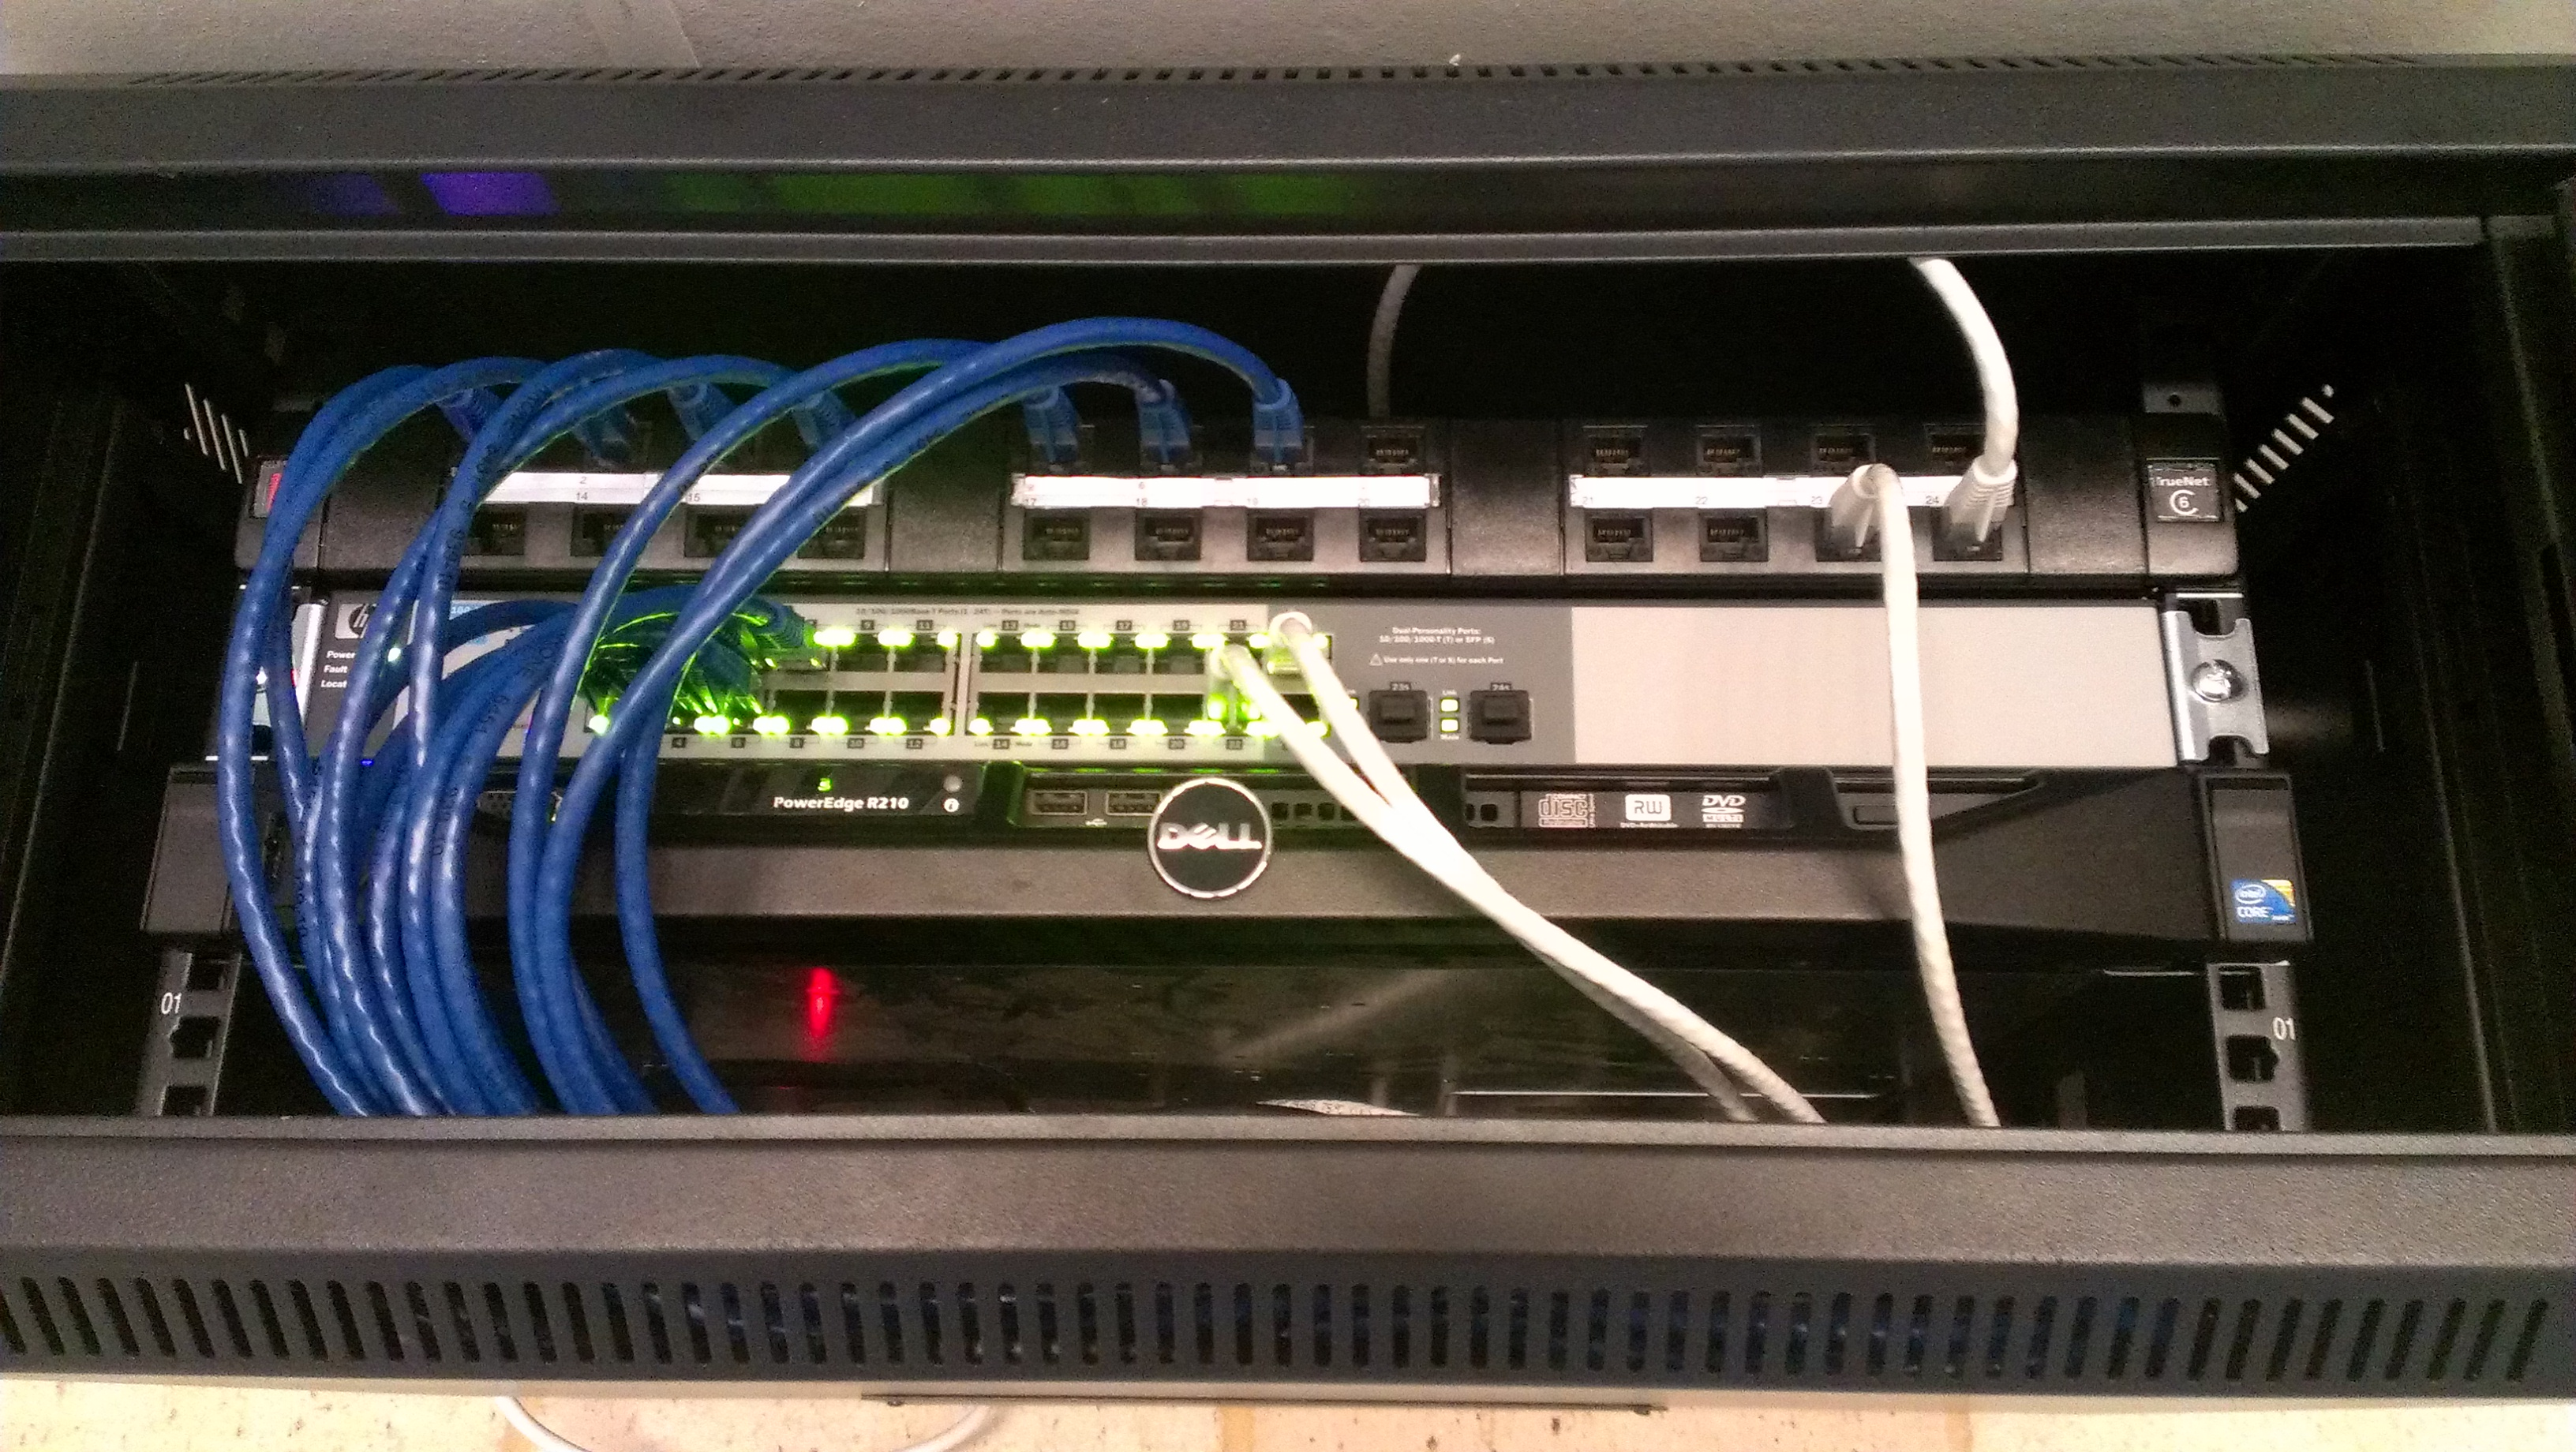 File:Small business (SOHO) network cabinet with equipment.jpg ...